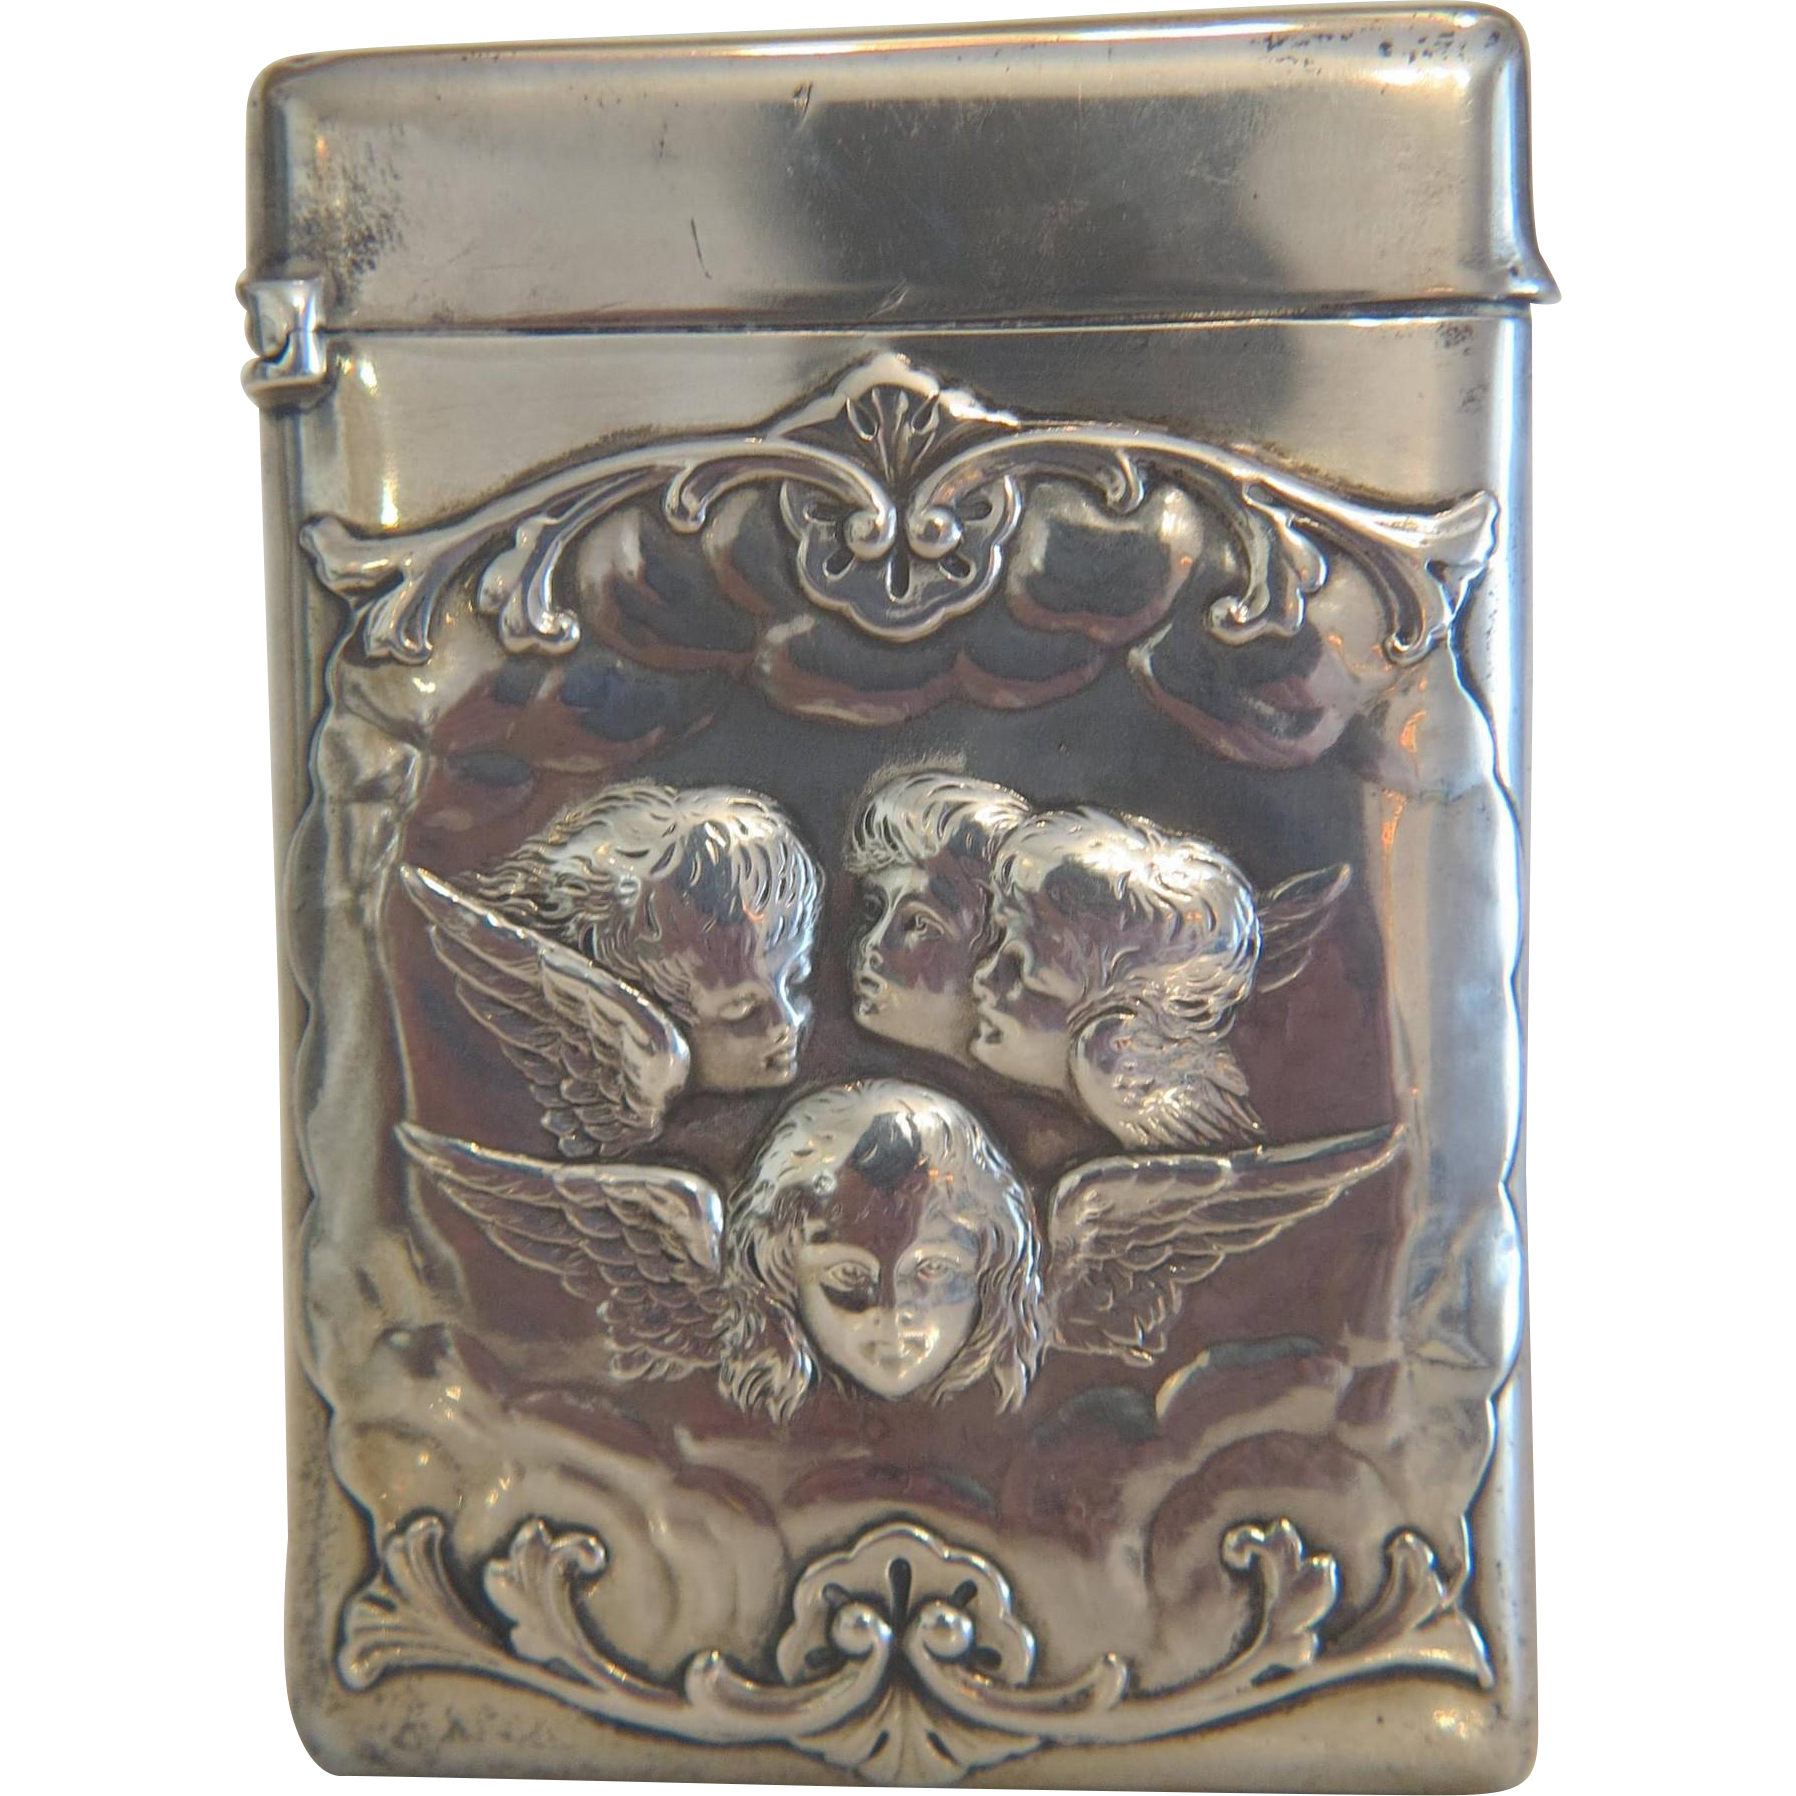 A fine antique London silver cigarette case, dated 1898